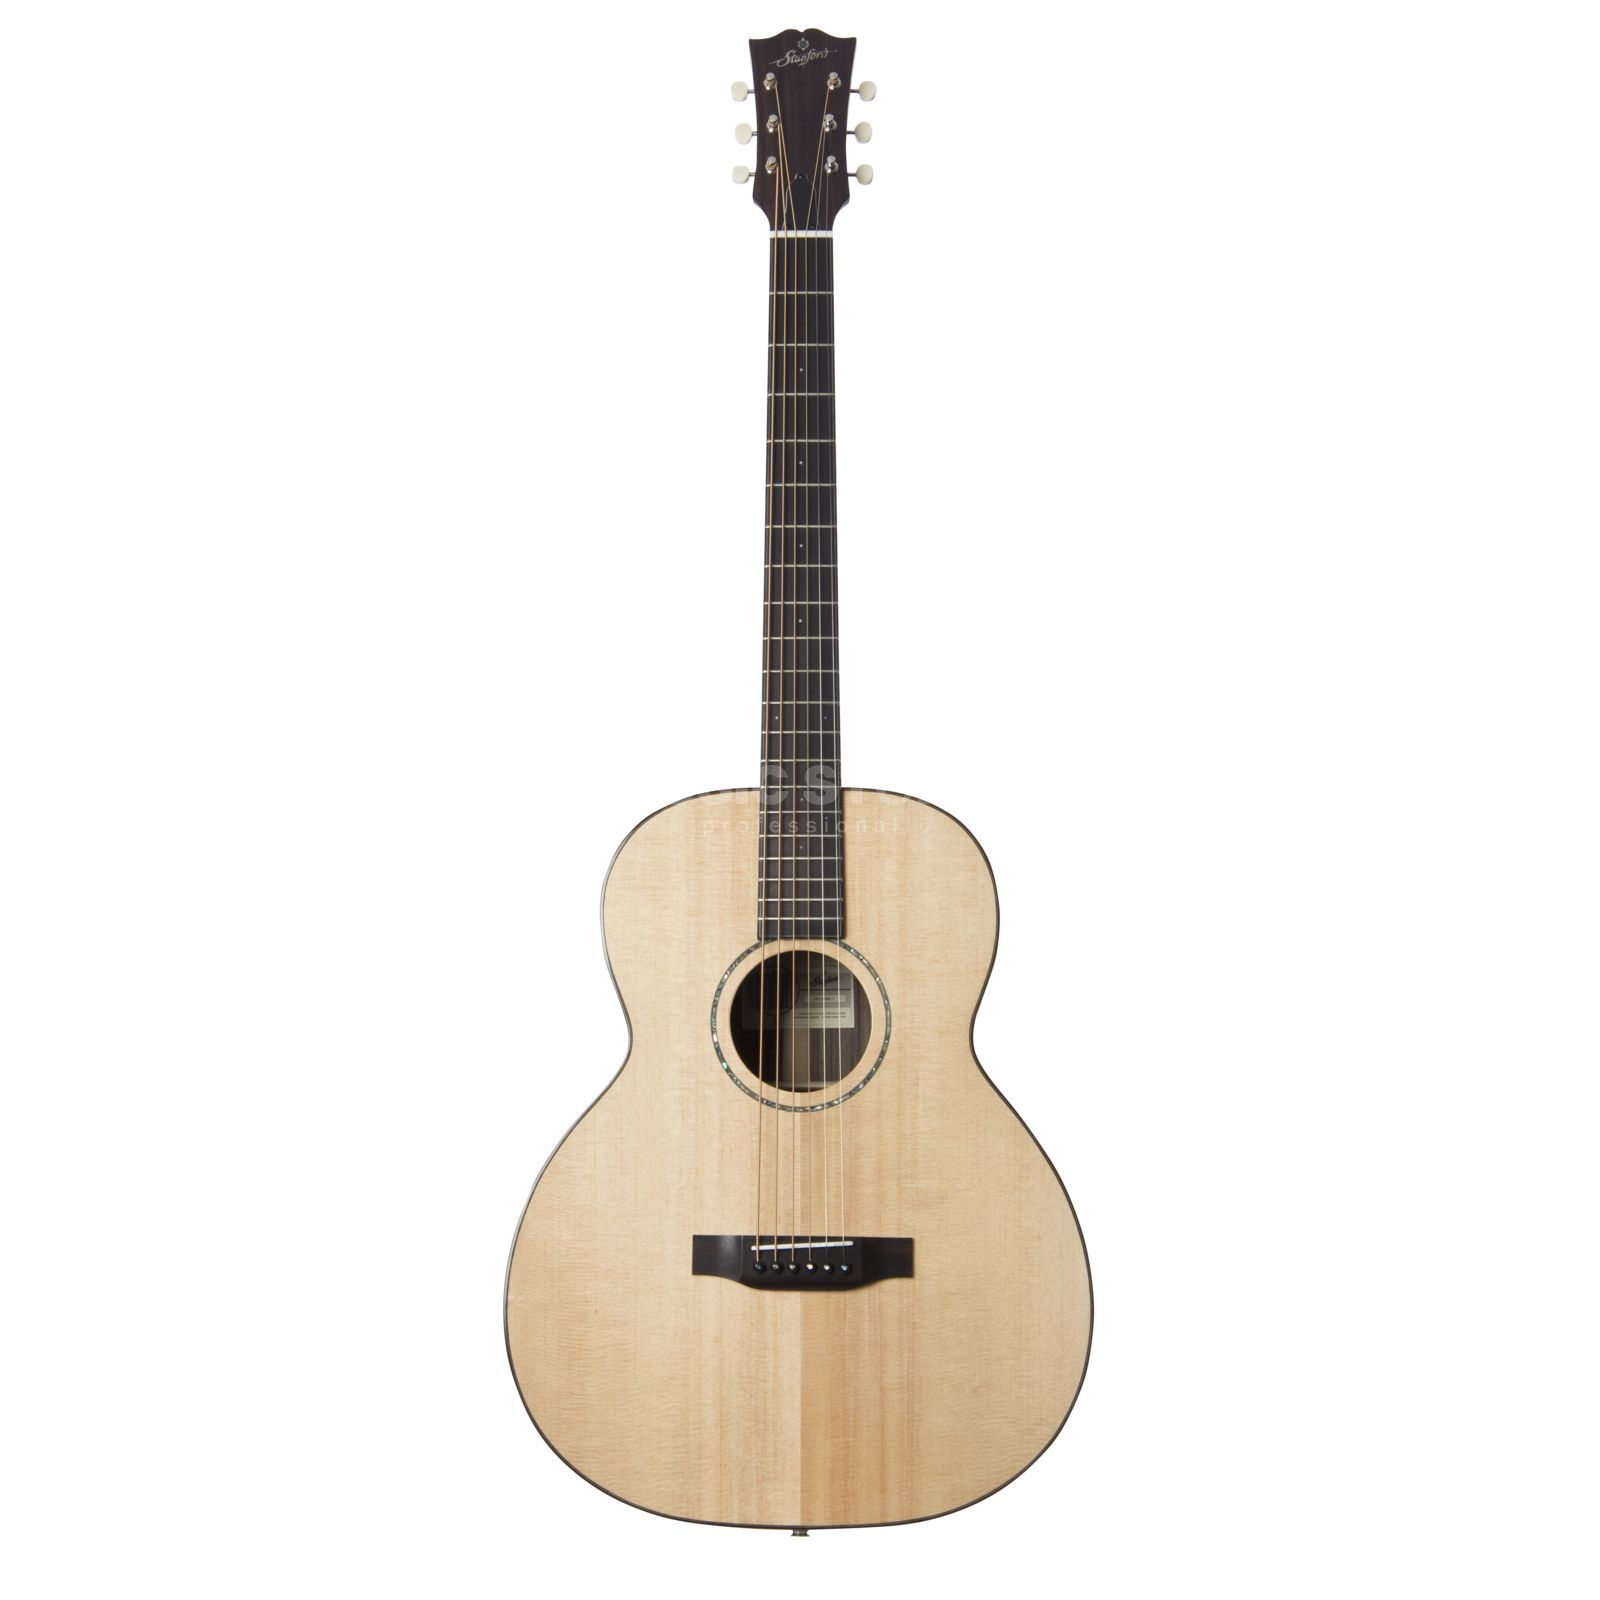 Stanford Big Bang 1-E Baritone Natural Deja Vu-Series Produktbillede